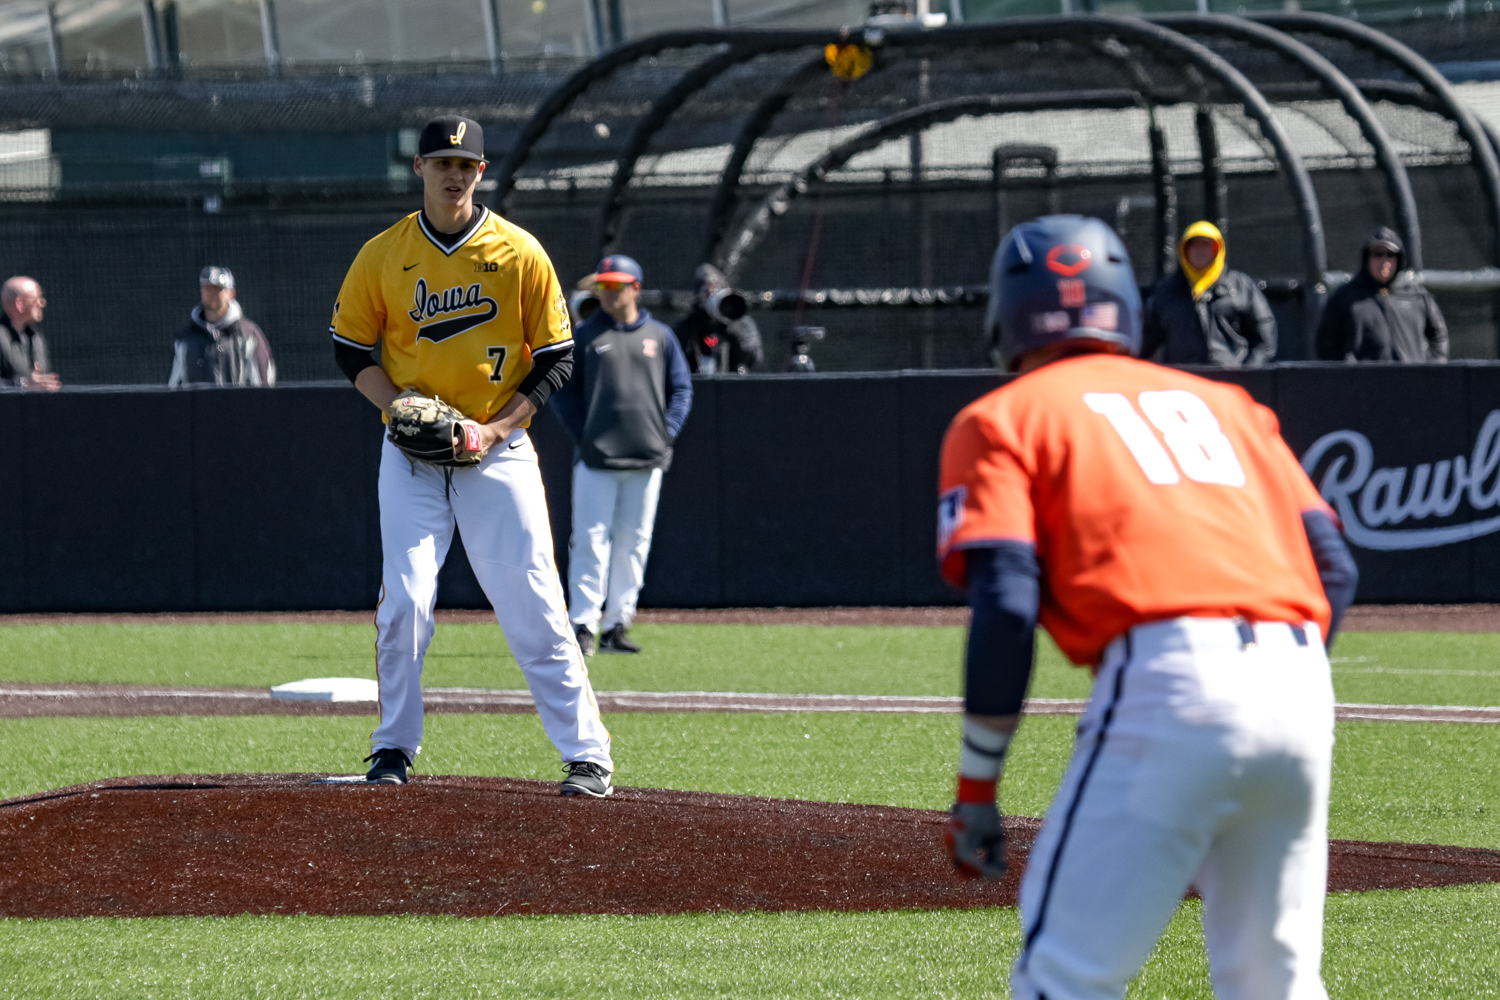 Iowa's Grant Judkins looks back towards third base during a baseball game against the University of Illinois on Sunday, Mar. 31, 2019. The Hawkeyes defeated the Illini 3-1.